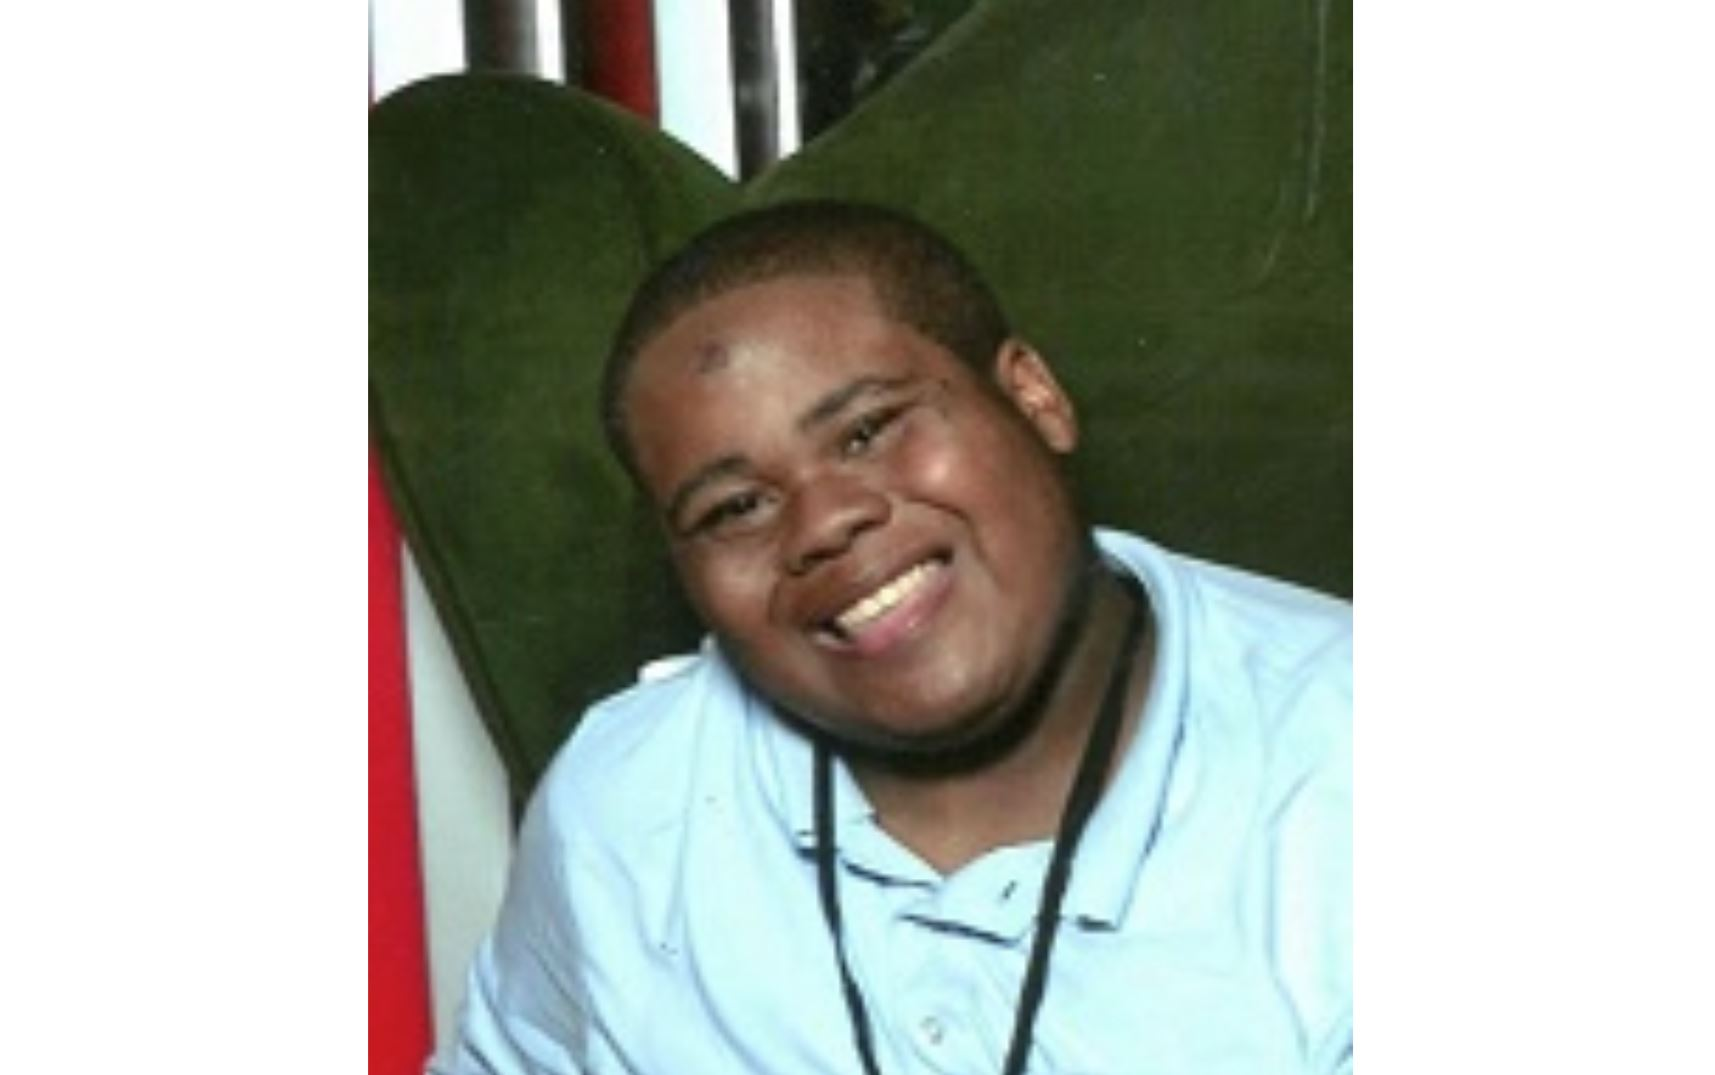 Missing and Endangered Person Alert Canceled: Greggory Charles Williams, Jr., 24, of Birmingham